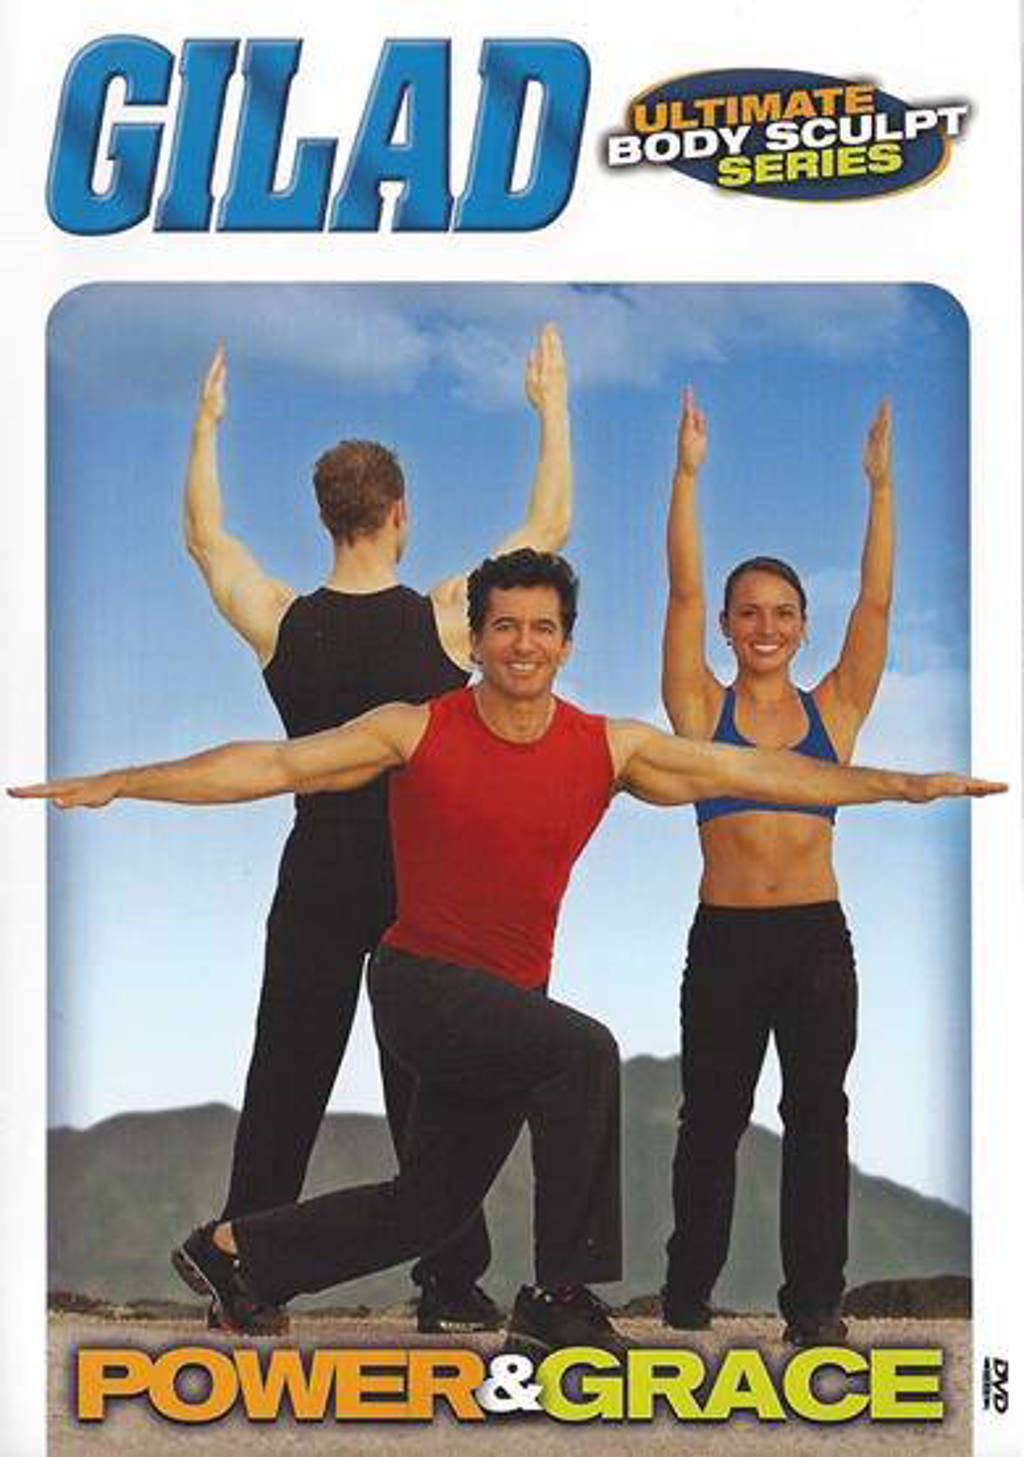 Gilad fitnessworkout - Power and grace (DVD)